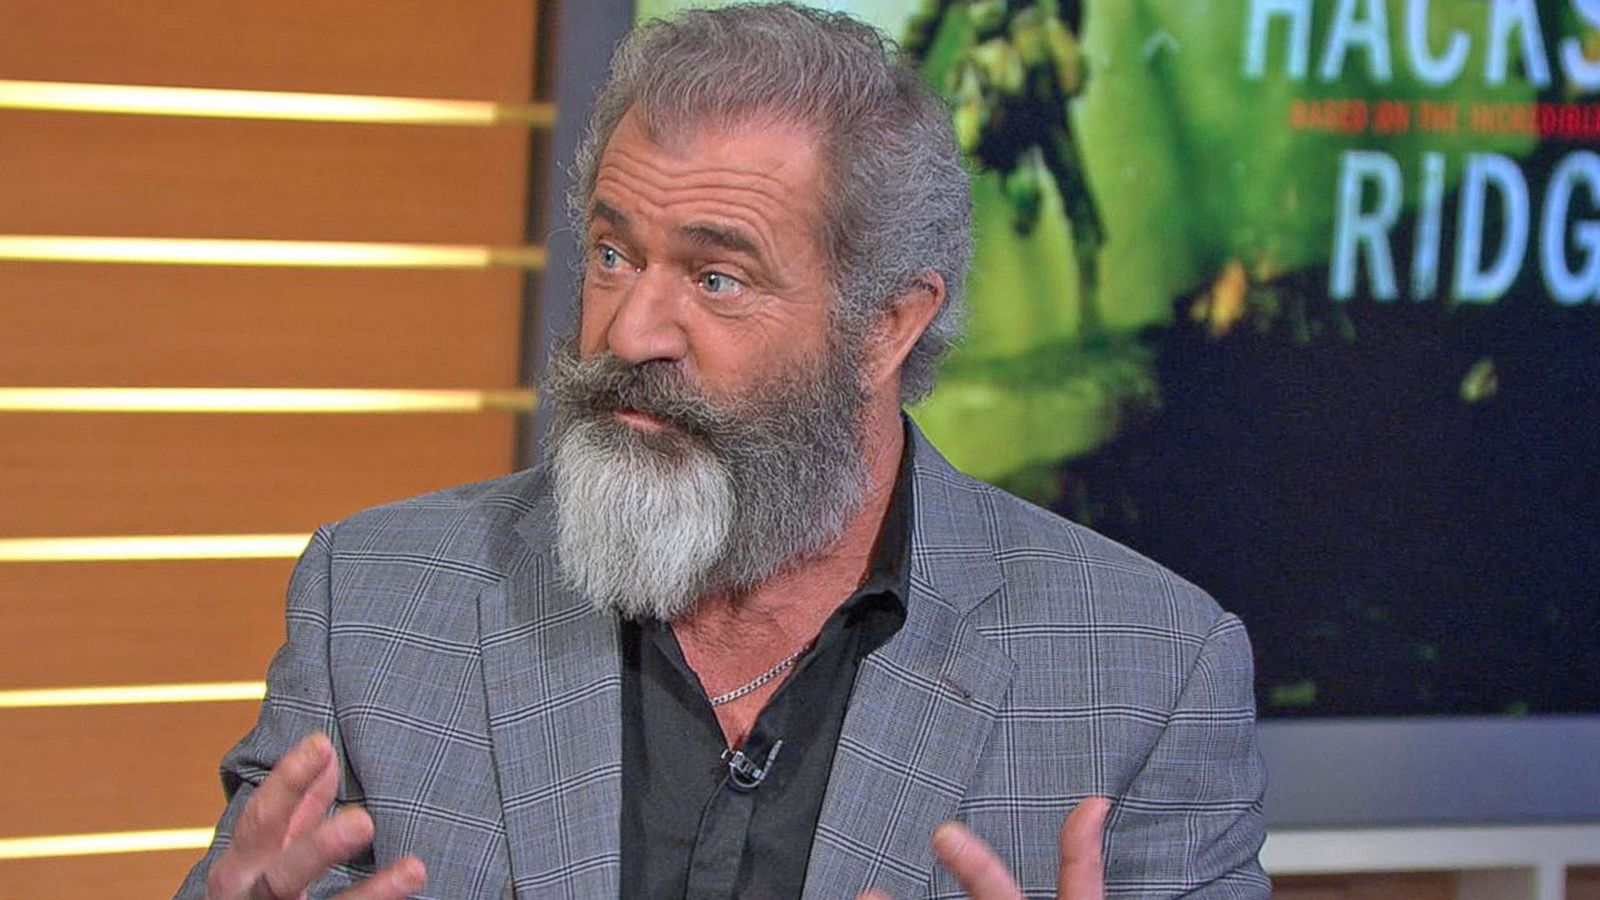 Mel gibson on directing his son milo in latest film hacksaw ridge mel gibson on directing his son milo in latest film hacksaw ridge abc news thecheapjerseys Image collections